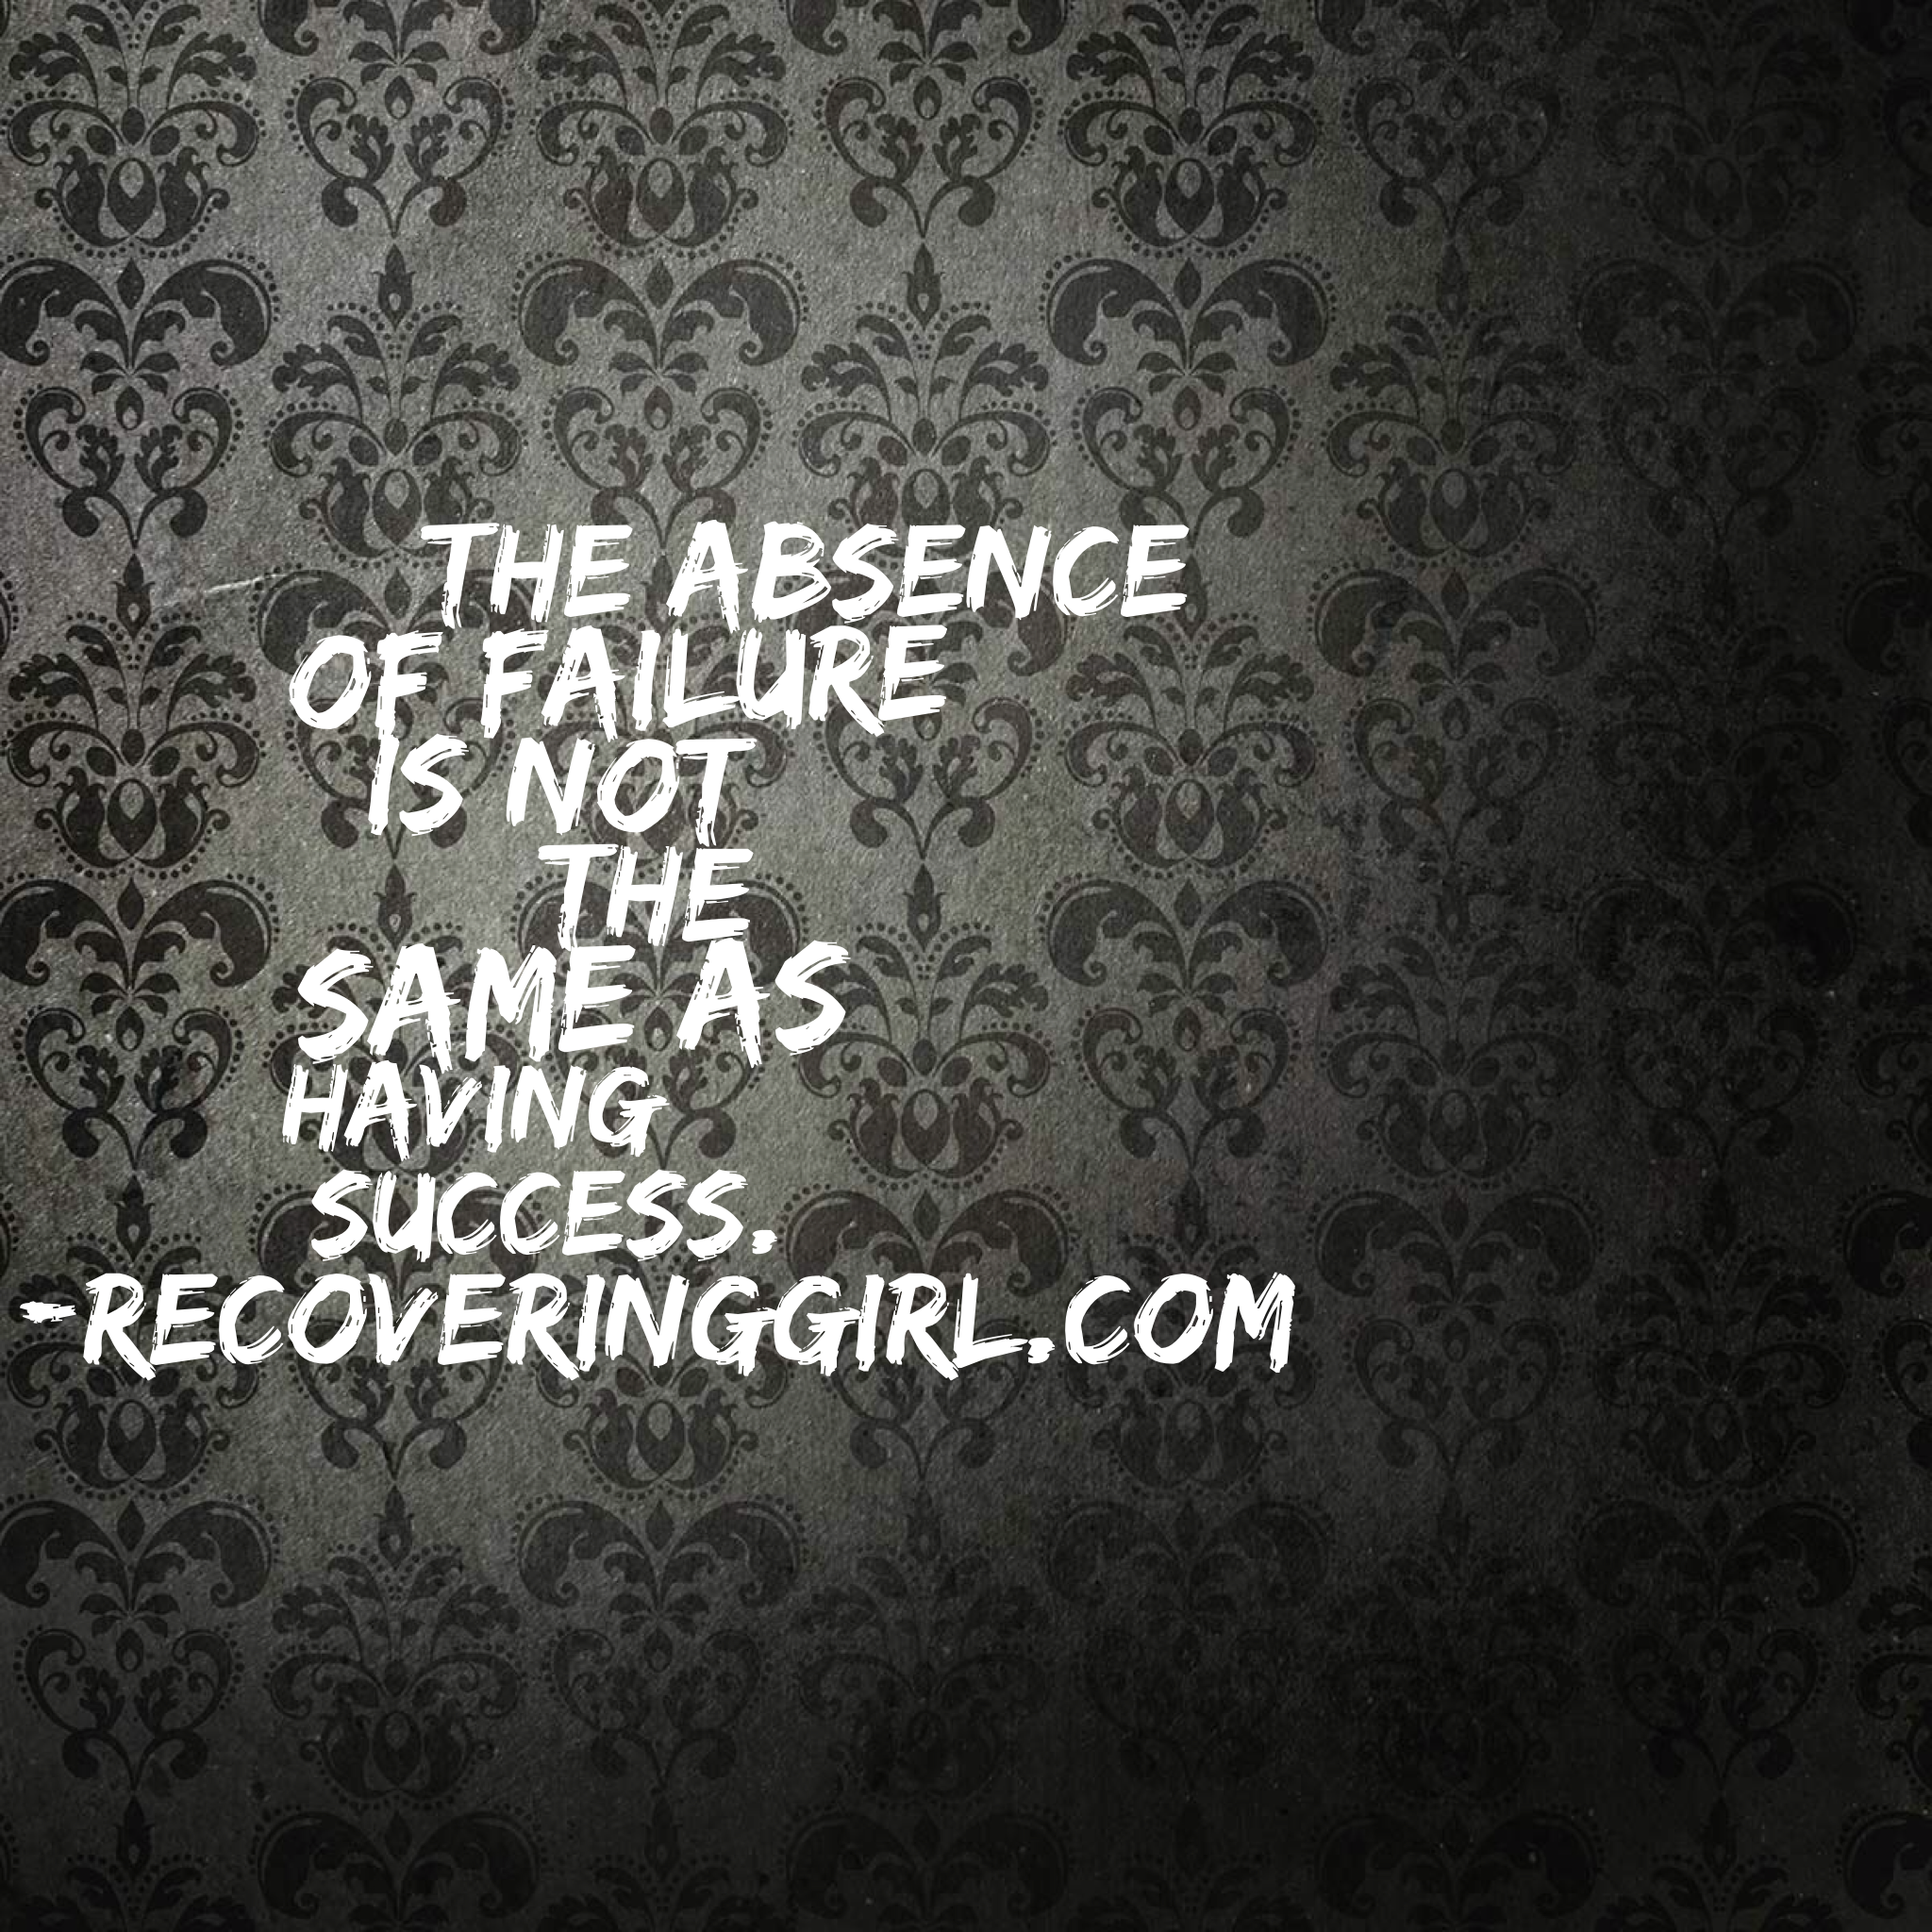 Inspirational Quotes About Failure: Fear Of Failure In Recovery Kept Me From Attempting